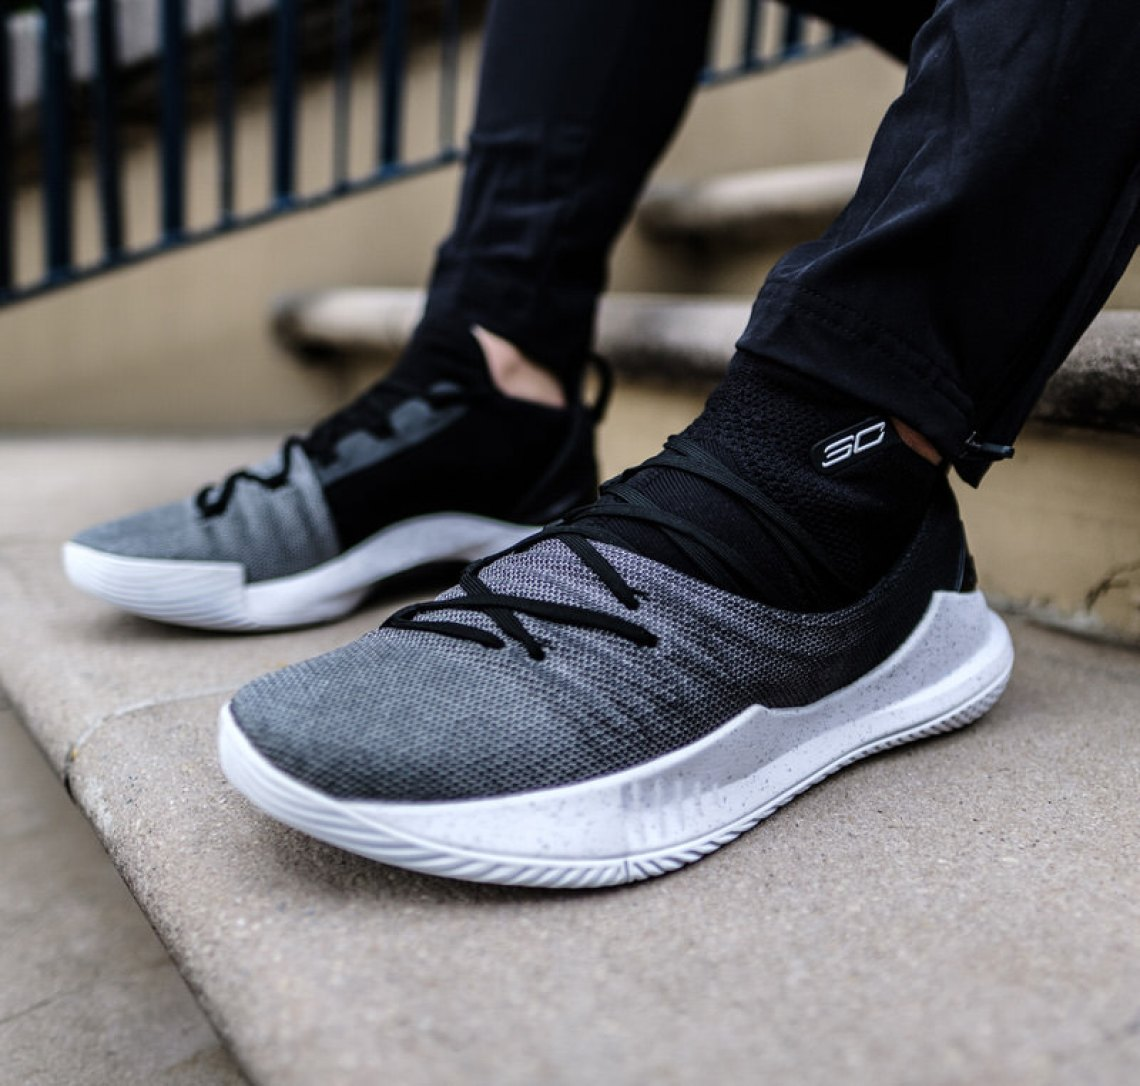 buy online 20e09 db23c On Foot Look    Under Armour Curry 5 In Black   Grey   White